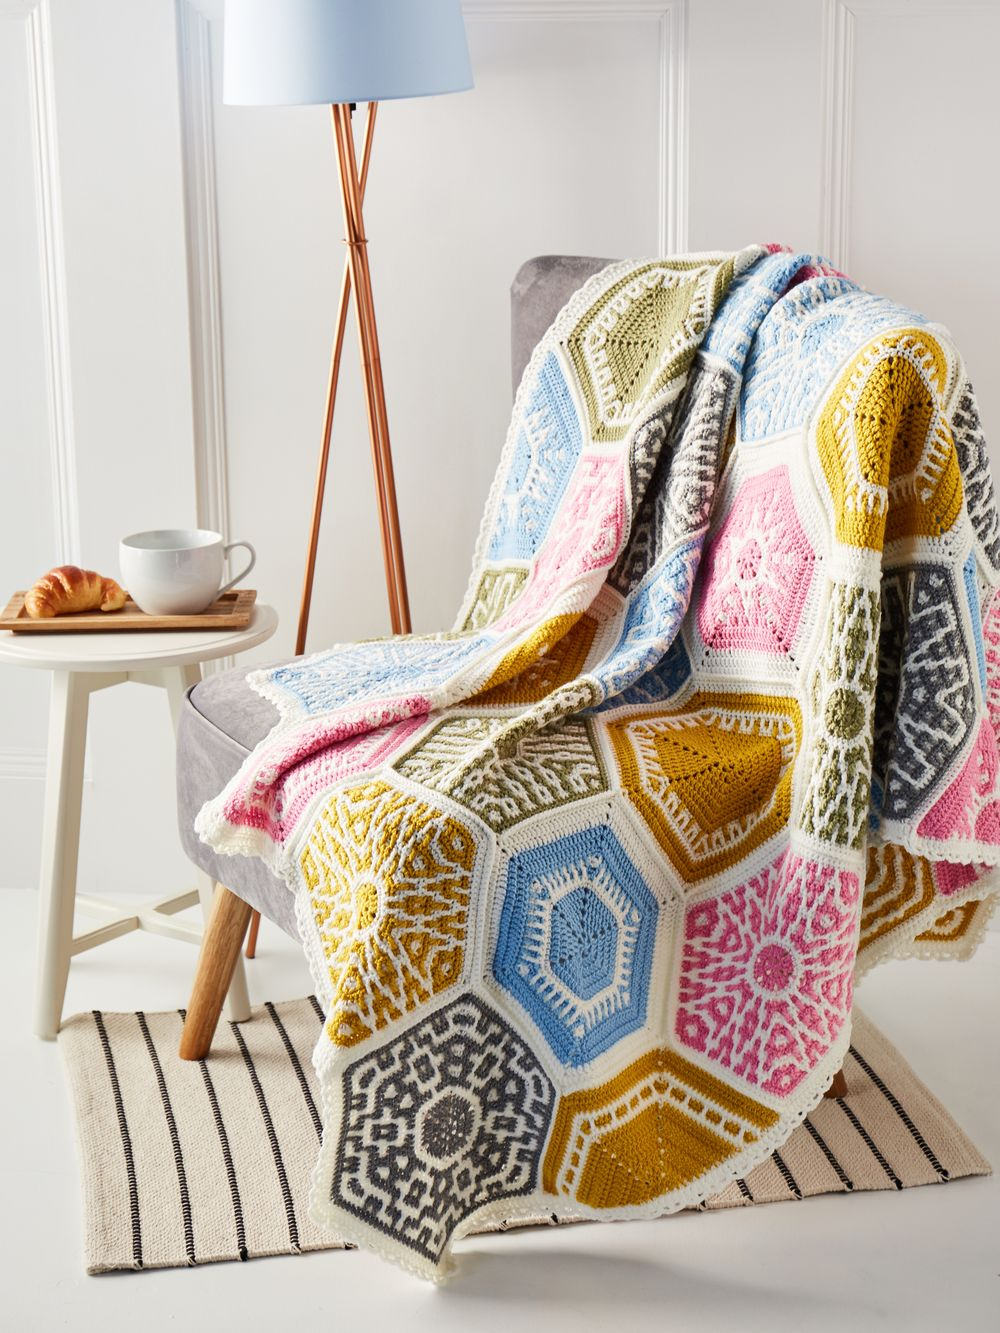 This crochet pattern was exclusively designed for Crochet NOW magazine